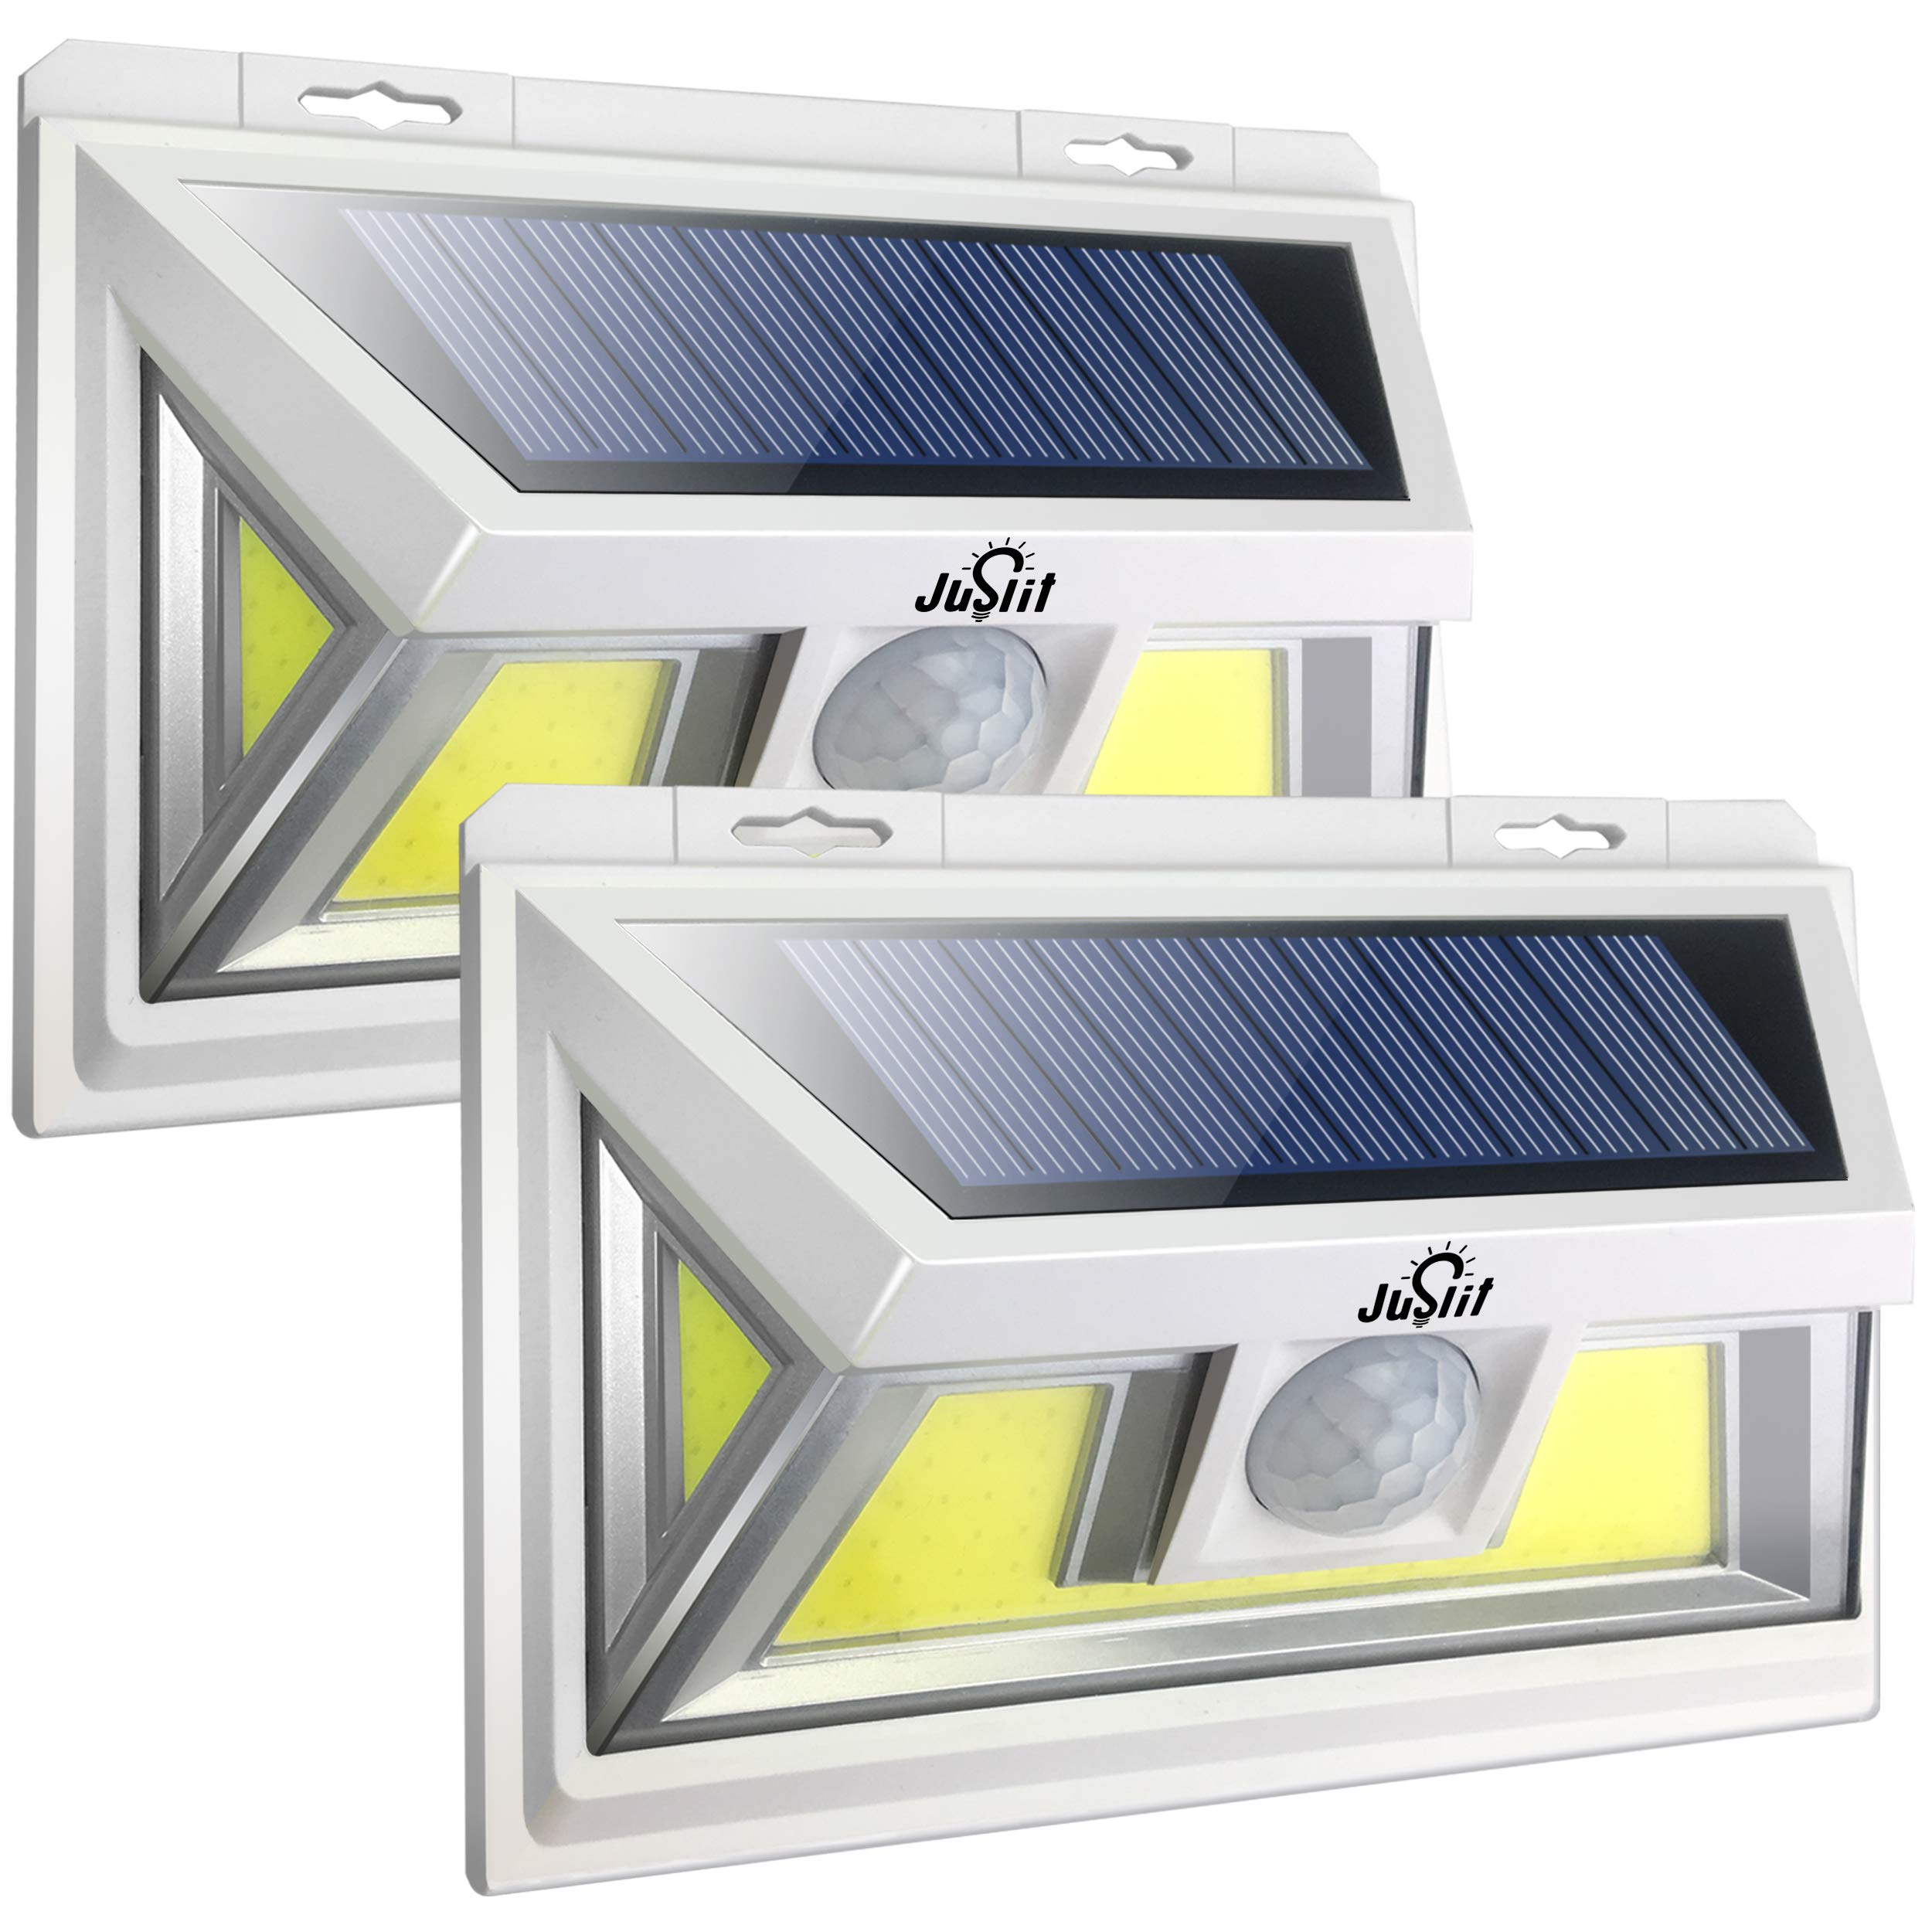 JUSLIT Motion Sensor Outdoor 74 Light Sources COB LED Solar Light, Super Bright, with Wider-Angle Lighting Panel, Wireless Waterproof Security Lights for Garage, Pathways, Backyard(2PK) by JUSLIT